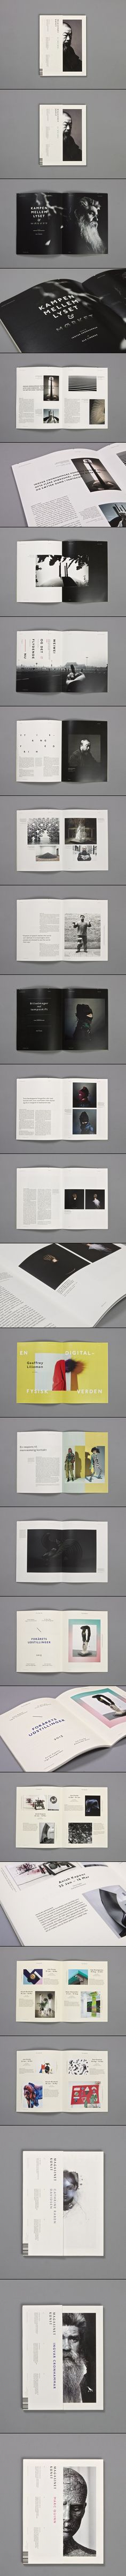 Experimental #Brochure #Magazine #Graphicdesign #Design #Portfolio #Vitae #Layout #Typography #Cover #Infobroschure